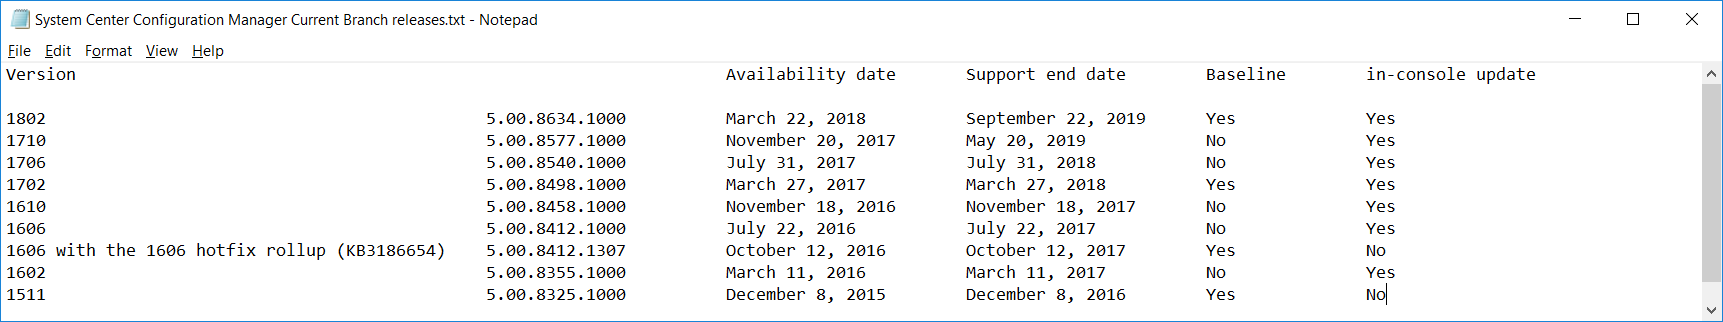 Upgrading to System Center Configuration Manager (Current Branch